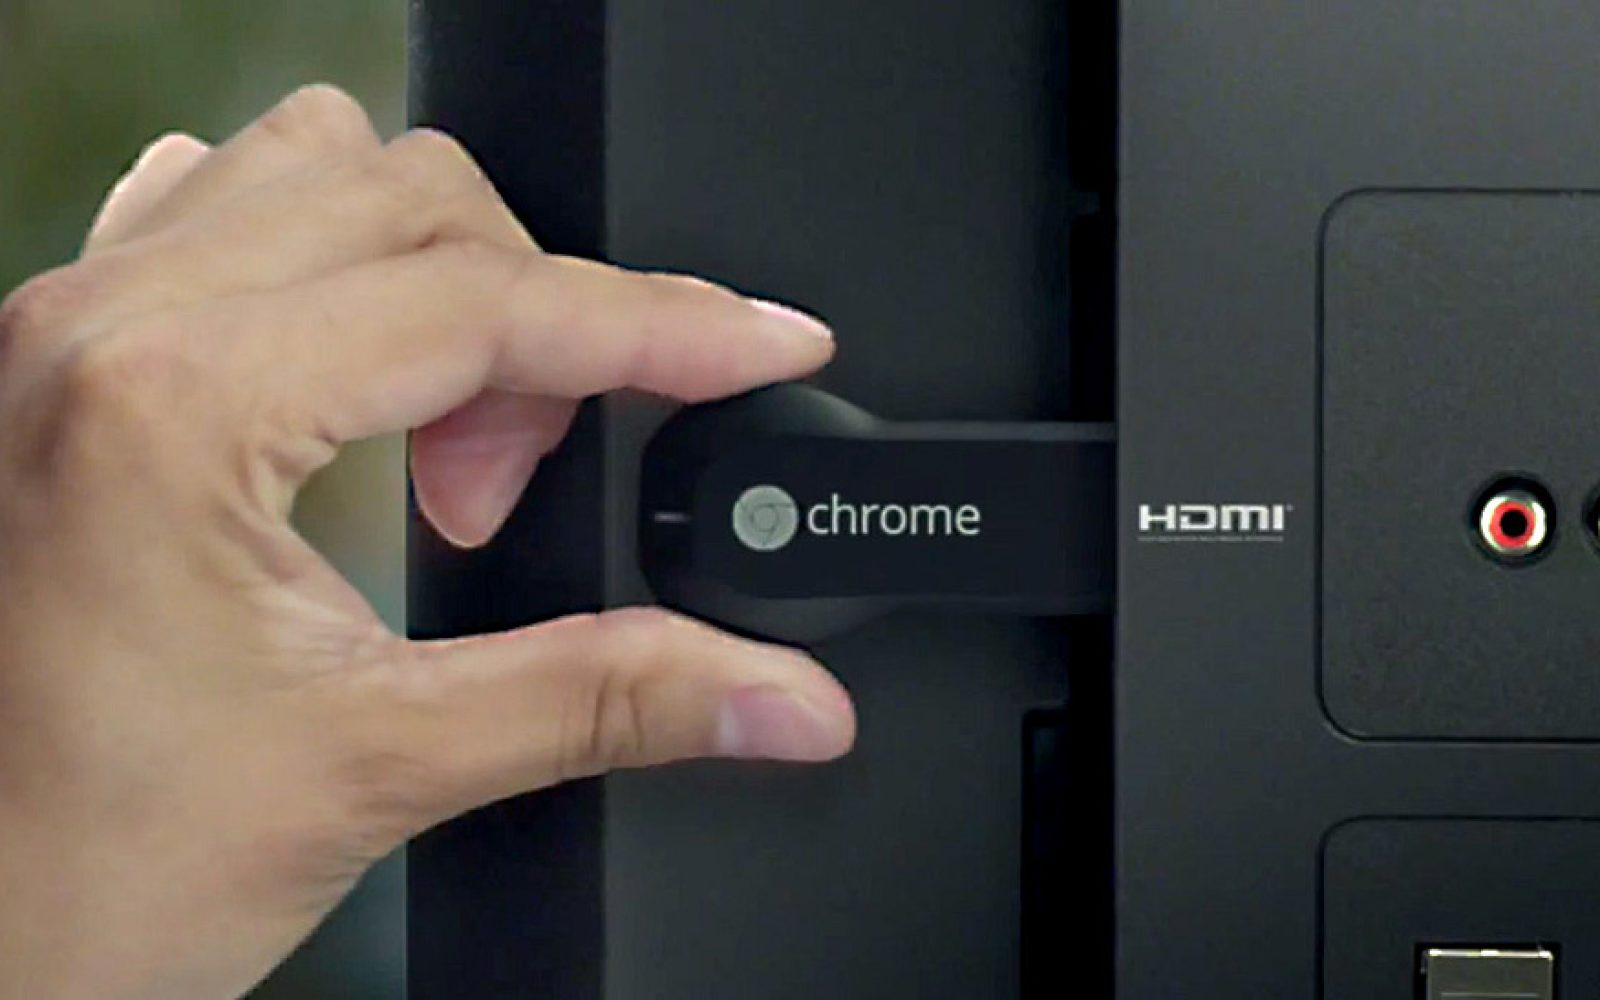 Chromecast beta extension now supporting 1080p tab casting